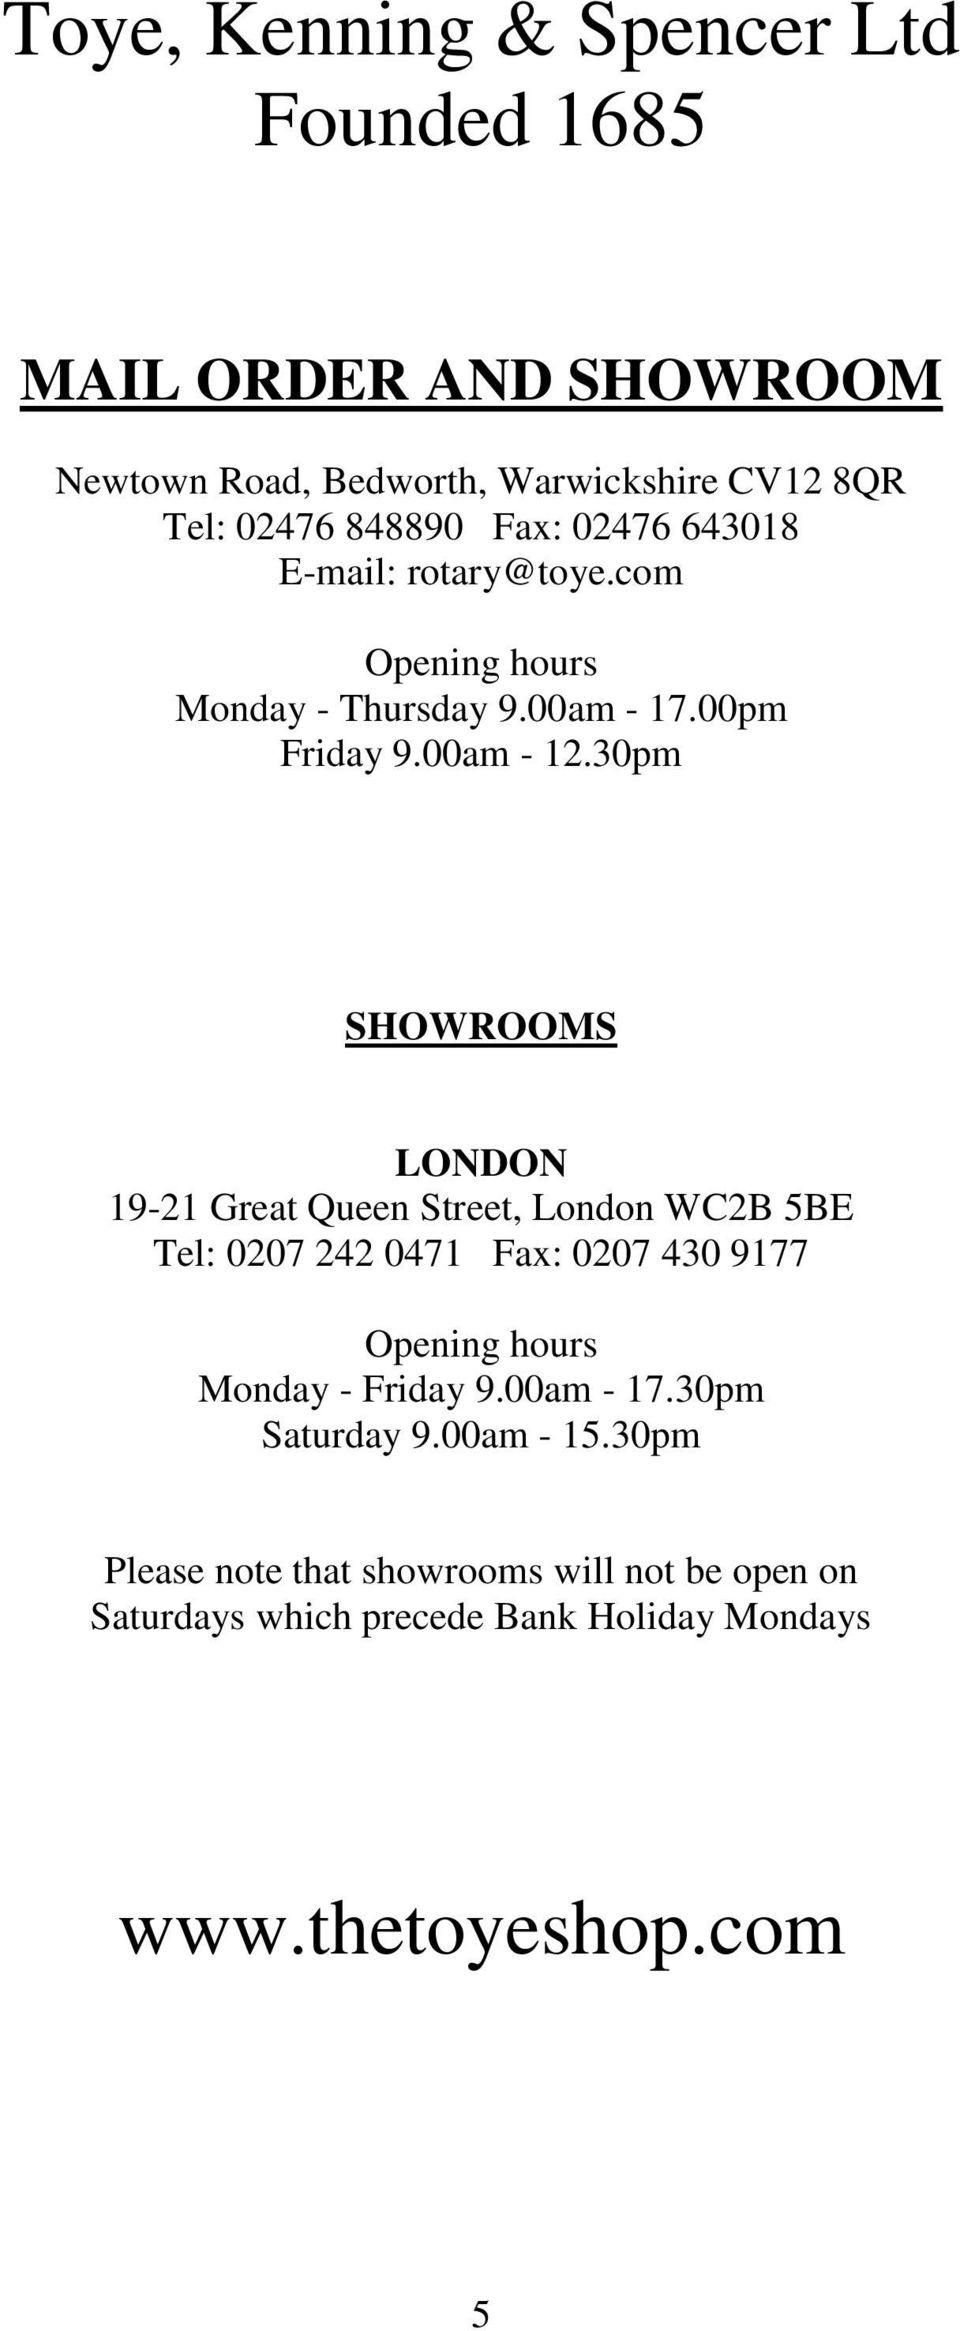 30pm SHOWROOMS LONDON 19-21 Great Queen Street, London WC2B 5BE Tel: 0207 242 0471 Fax: 0207 430 9177 Opening hours Monday - Friday